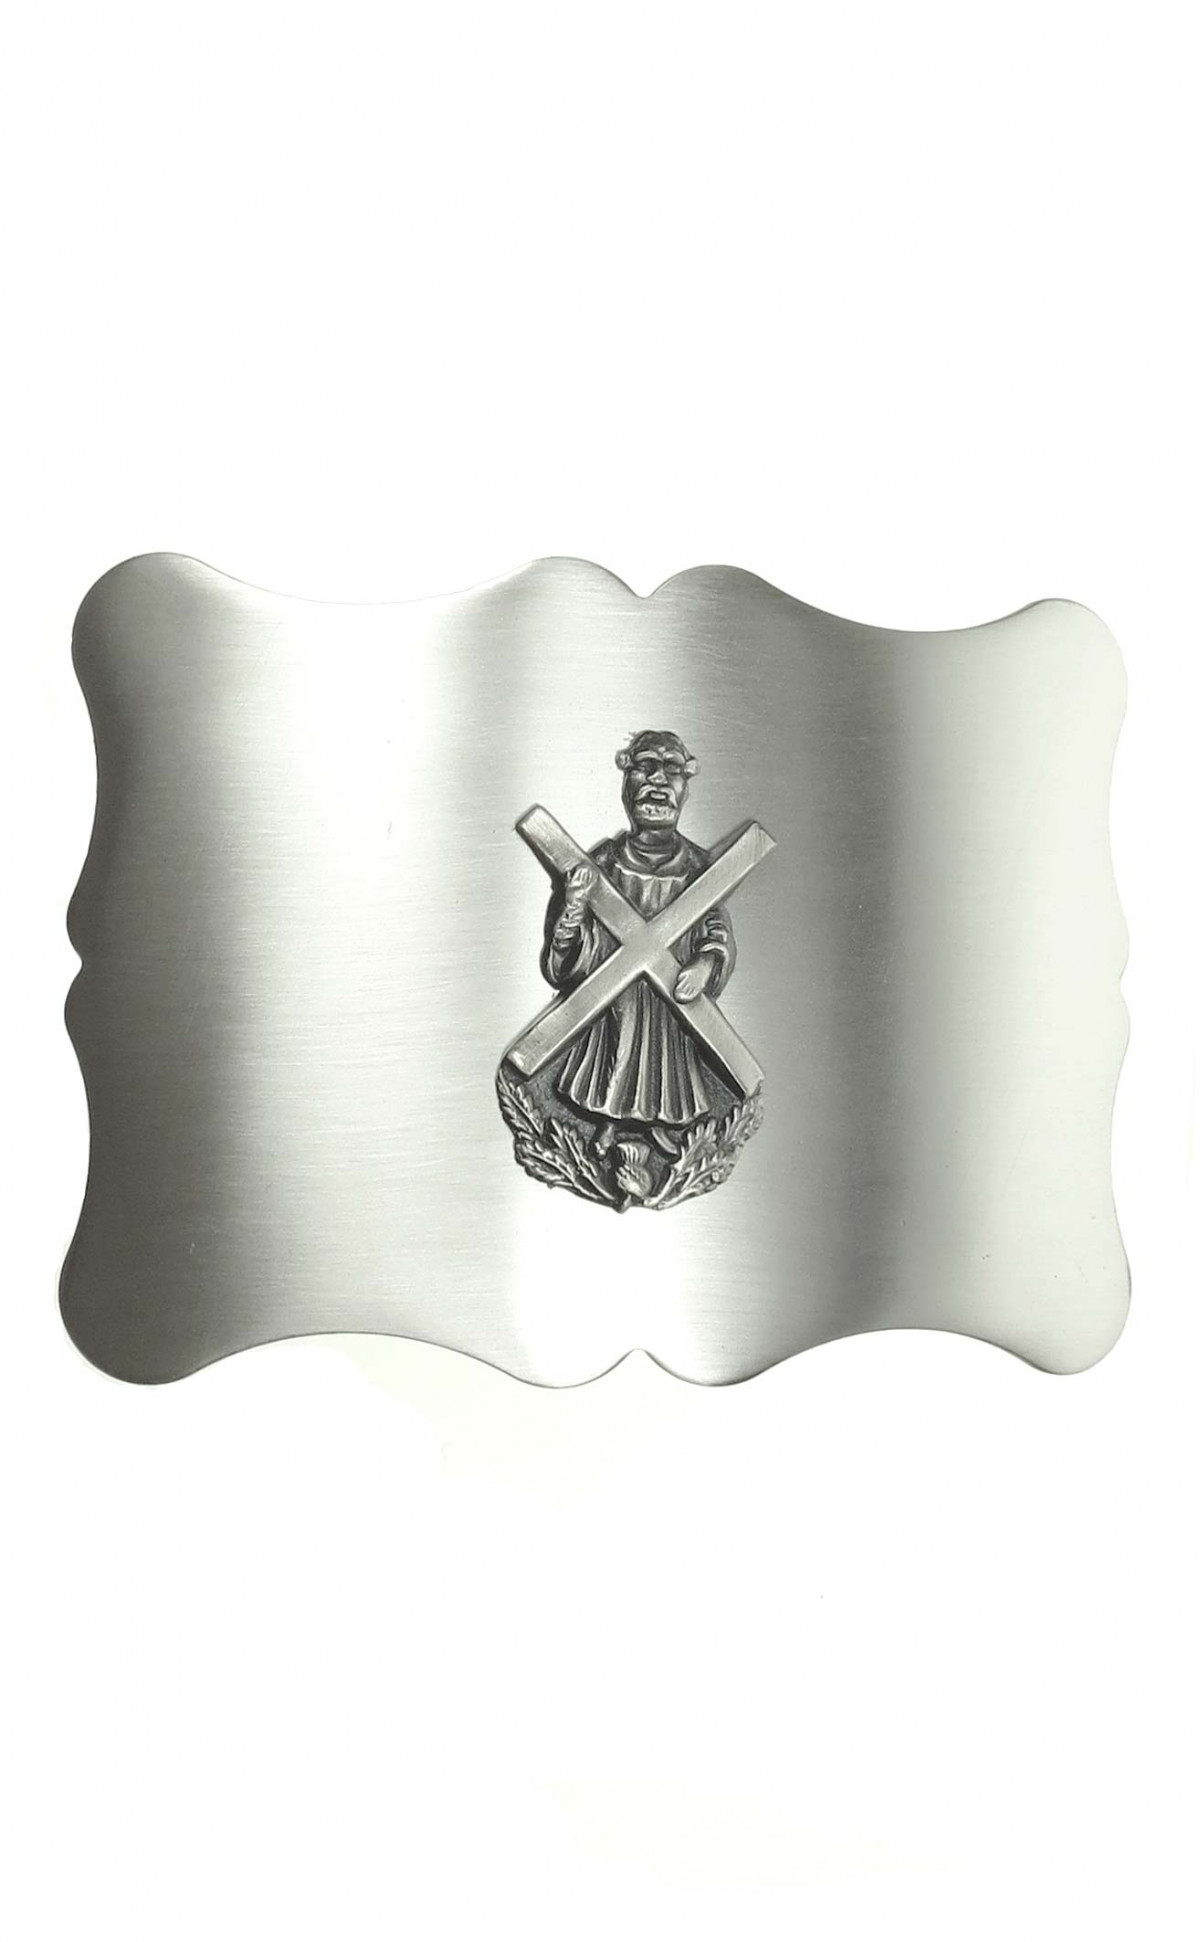 wscot-sr_wscot_buckles_antiqueplain_standrews_1